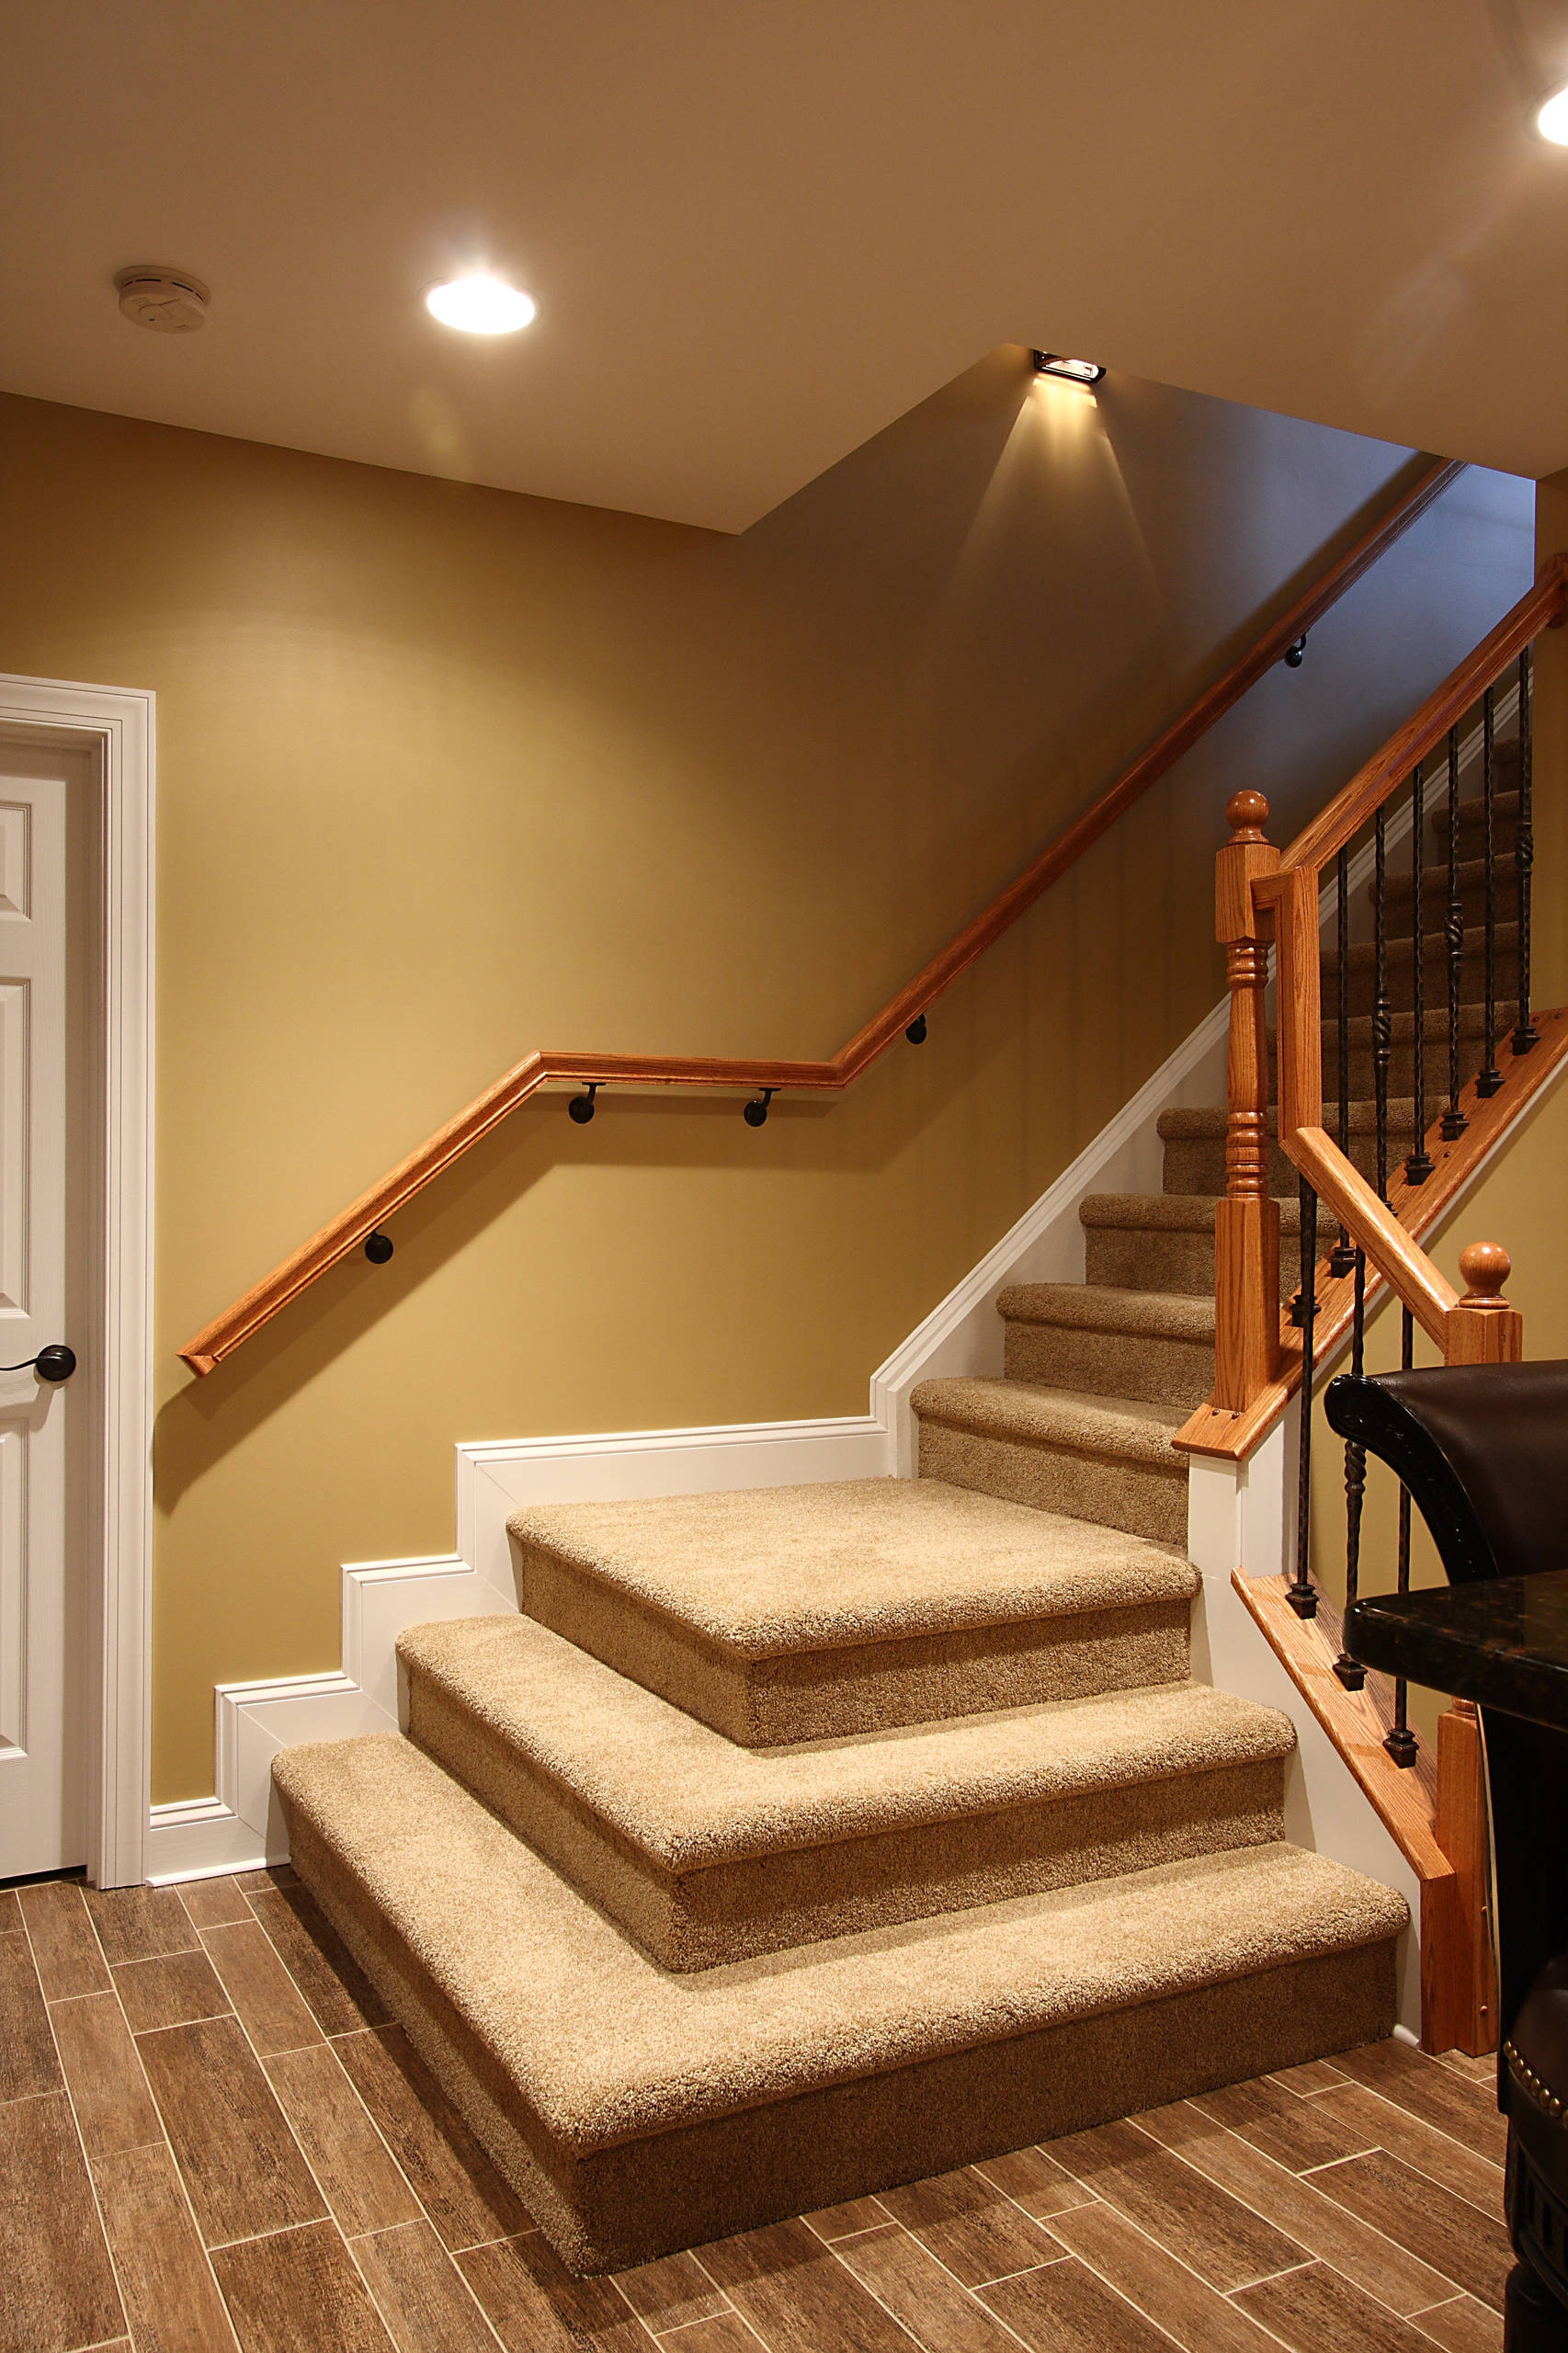 Basement Stairs Houzz | Stairs Leading To Basement | Beautiful | Painted | Unfinished Basement | Metal | Basement Peaked Roof